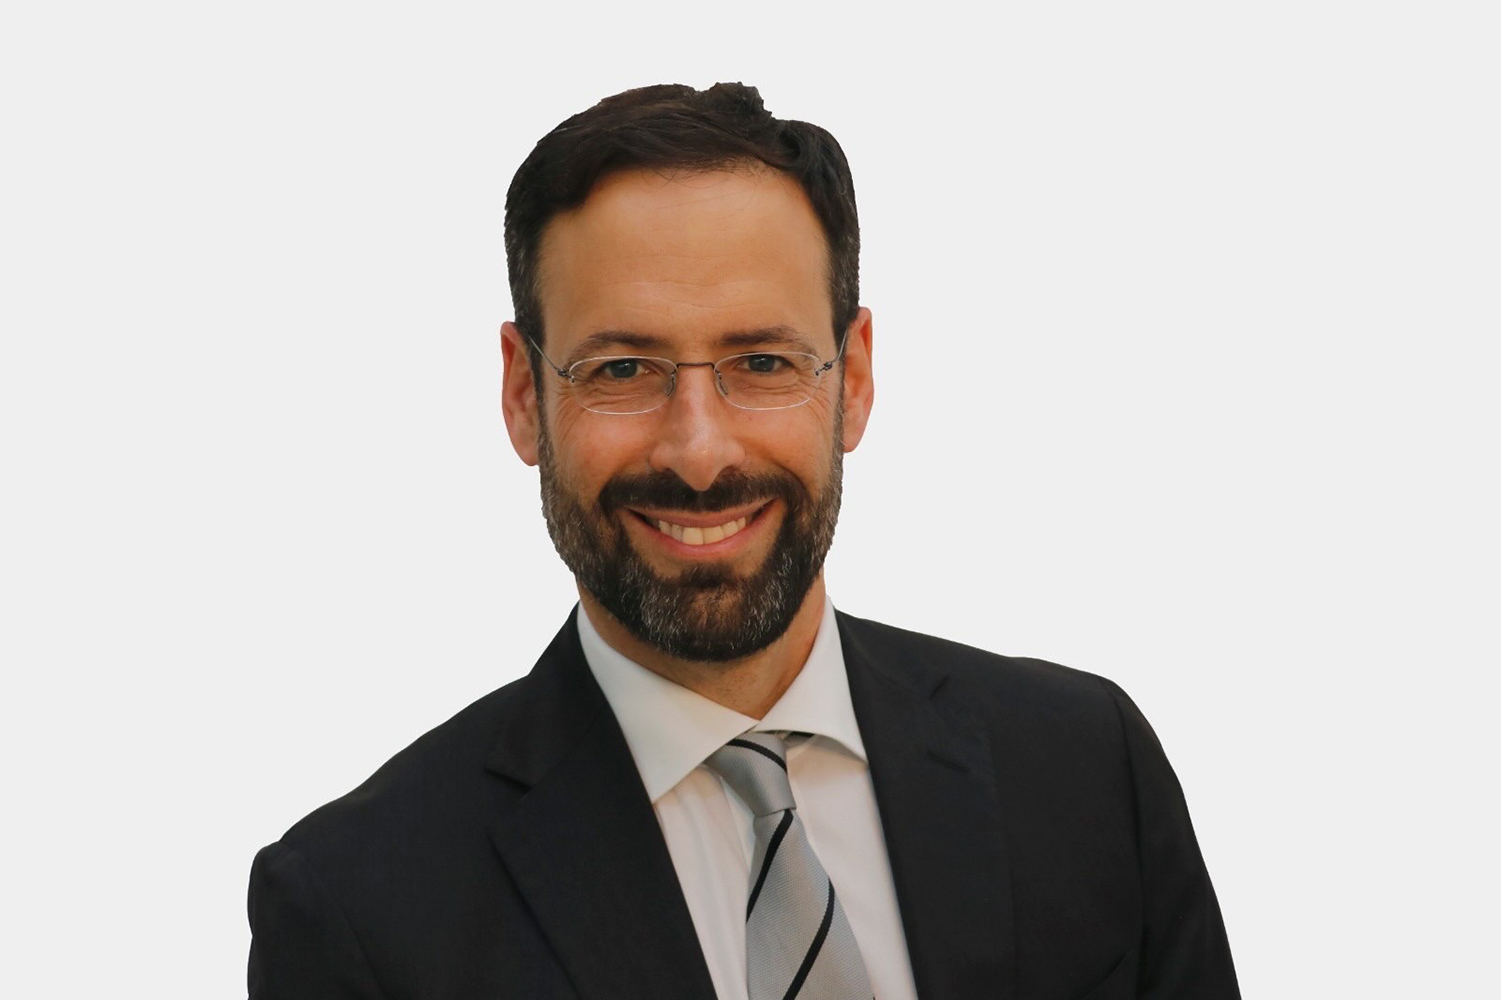 DKSH appoints Ido Wallach as CFO